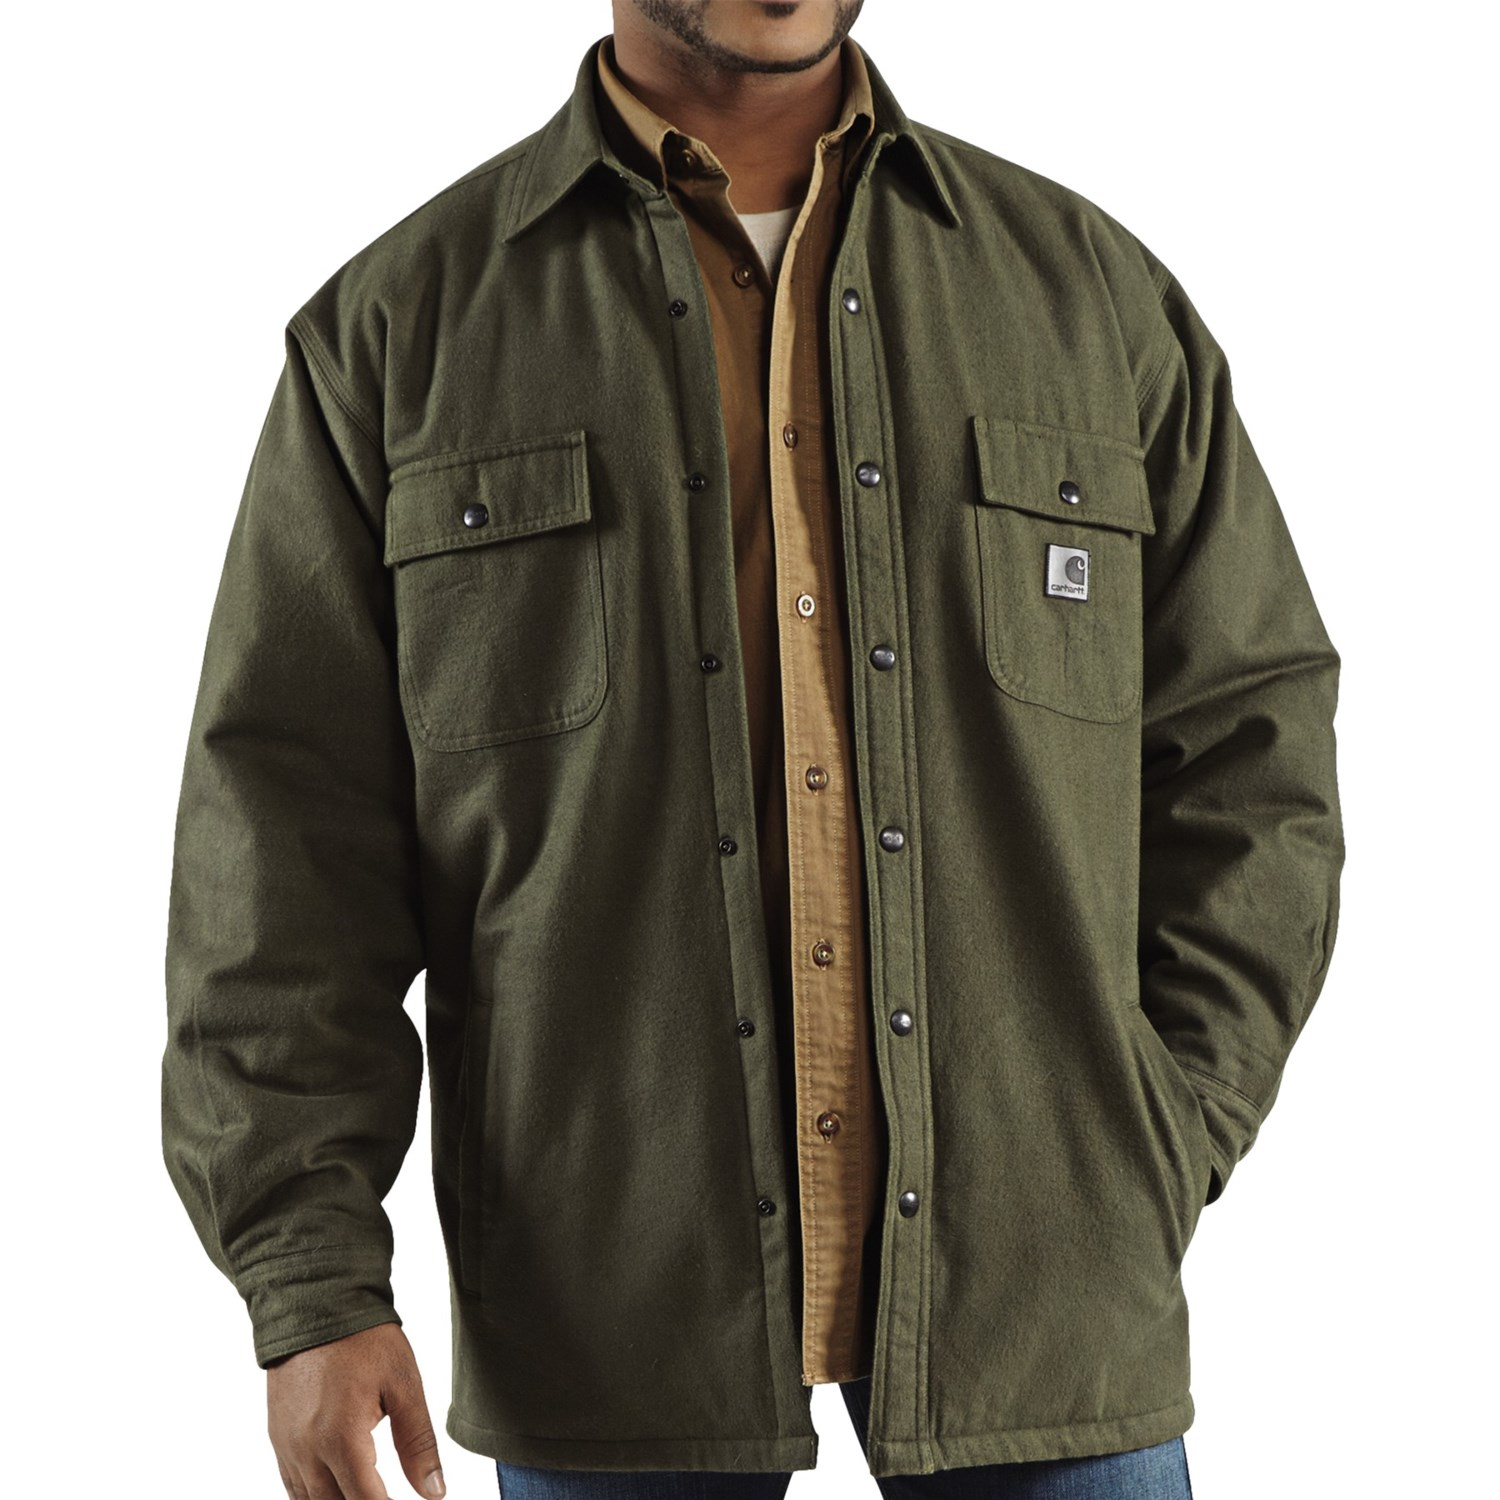 Cabela's Men's Three-Season Jacket – Tall () The plush fleece lining adds warmth when the days get a little colder. Nylon-lined sleeves for easy on and off. Zippered handwarmer pockets. Adjustable elastic cuffs and an elastic-banded bottom. Item: IK $